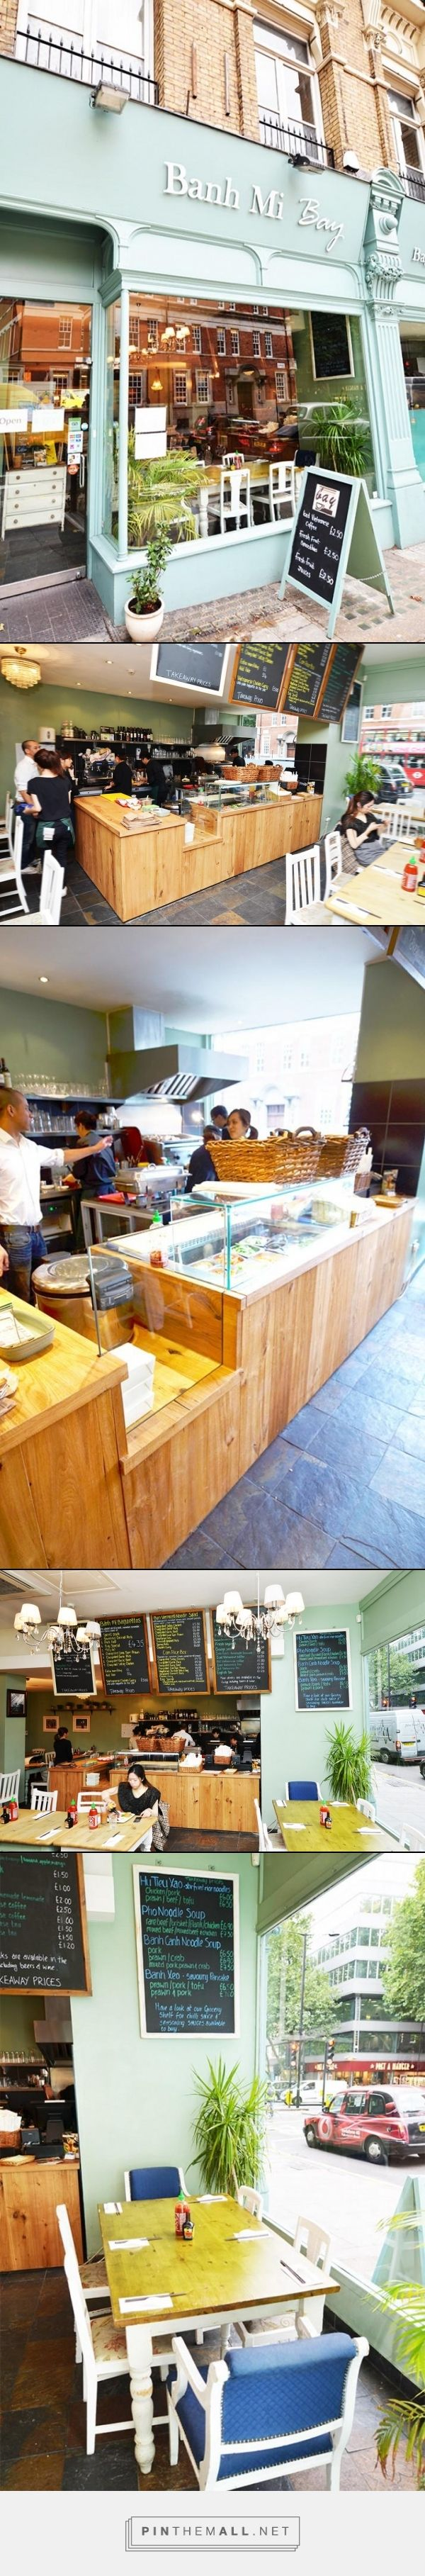 Catersales designed and fabricated custom wooden front counters for popular Vietnamese restaurant Banh Mi Bay  #DiningCafé #Holborn #VietnameseDishes #FrontCounters #BarCounters #Oak